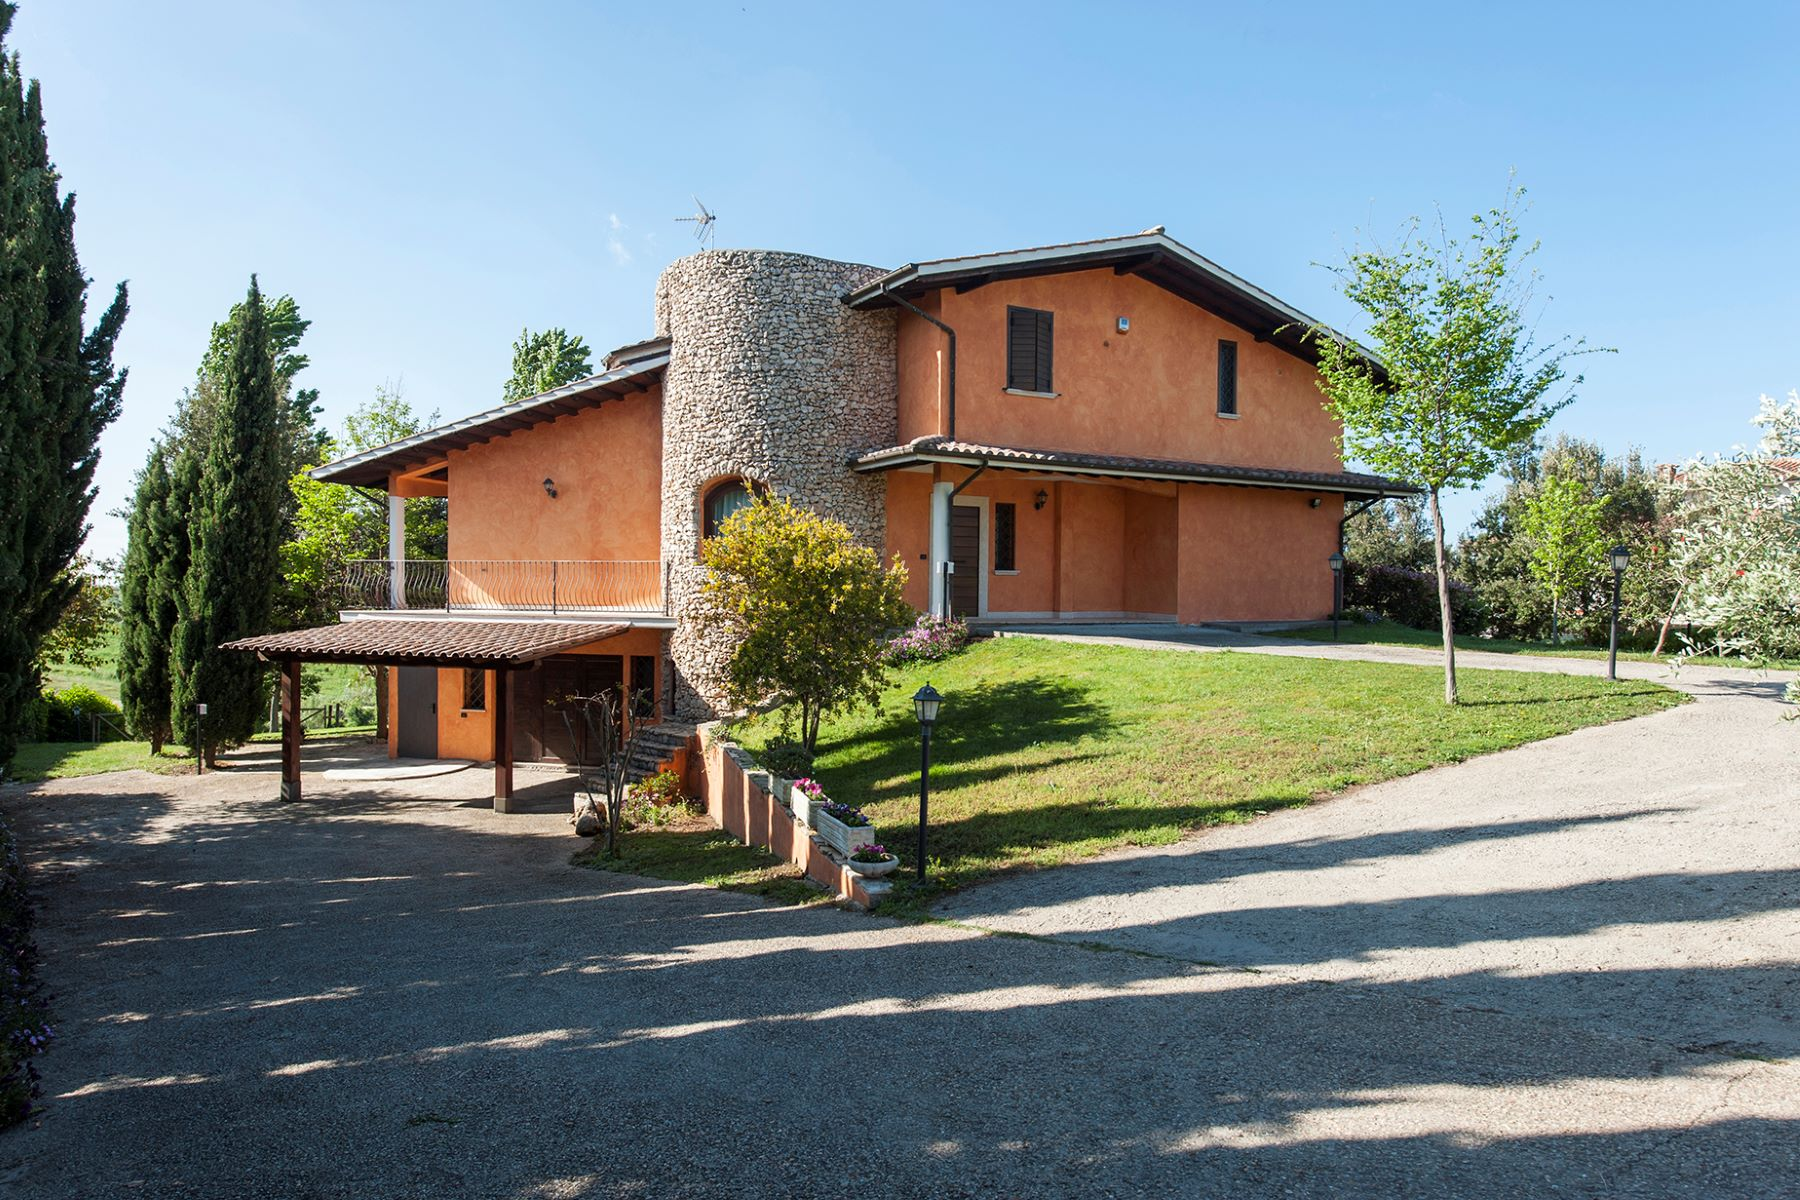 Single Family Home for Sale at Country villa in Cerveteri Cerveteri, Rome Italy